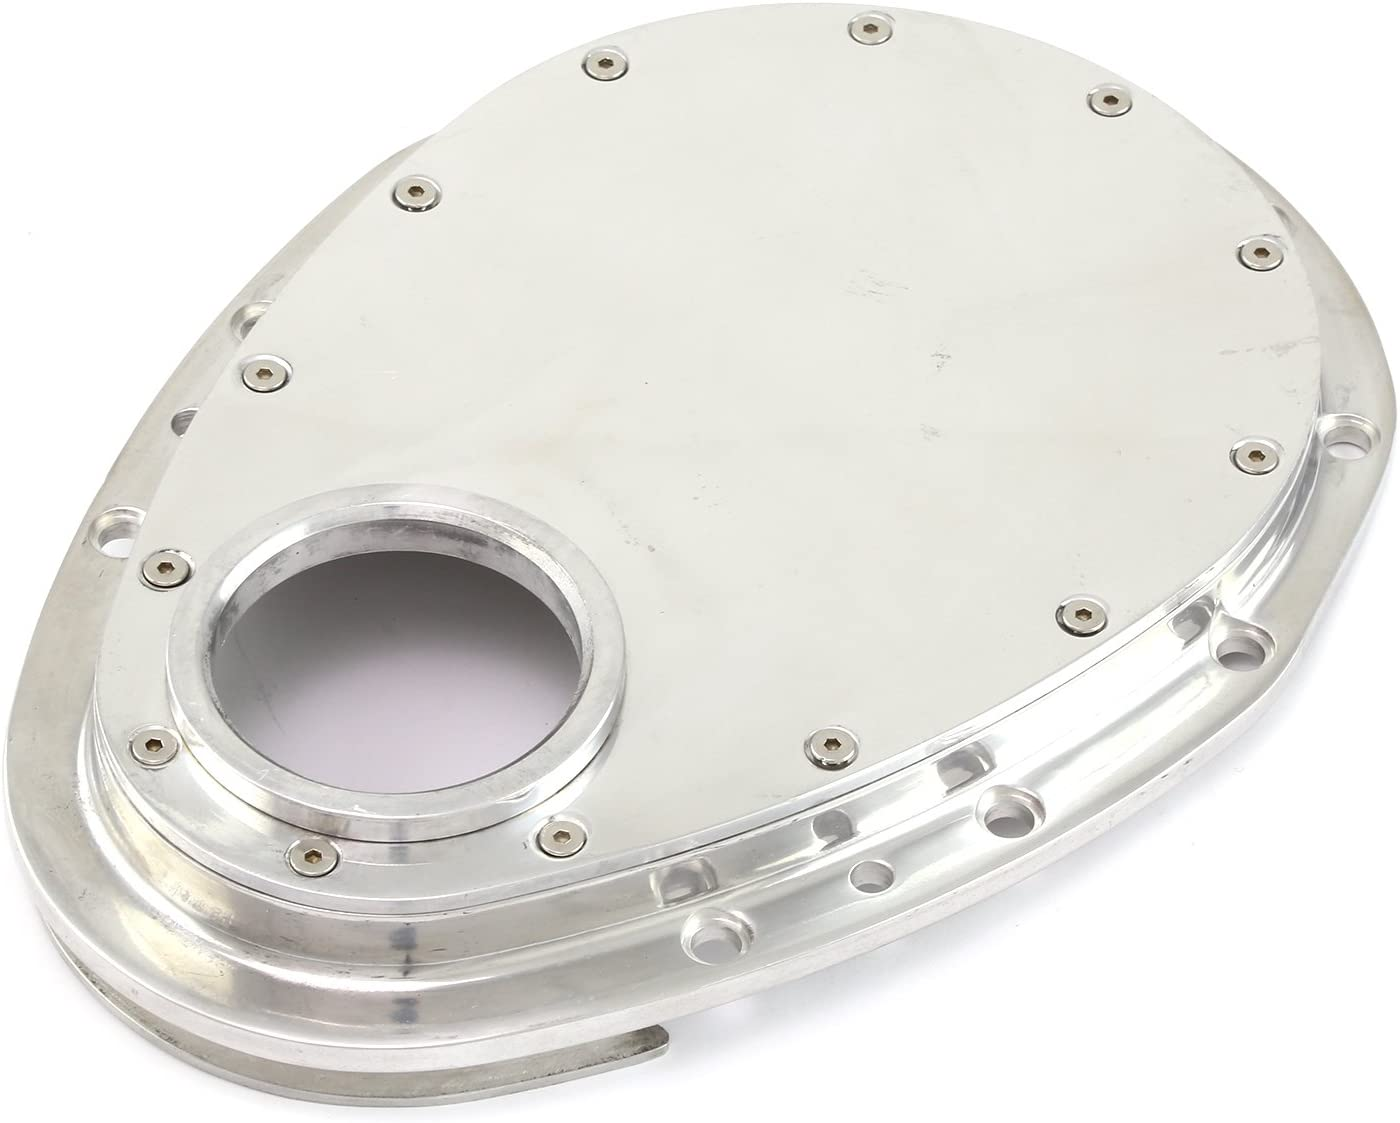 Chevy SBC 350 2-Piece Polished Aluminum Timing Chain Cover w//Inspection Plate